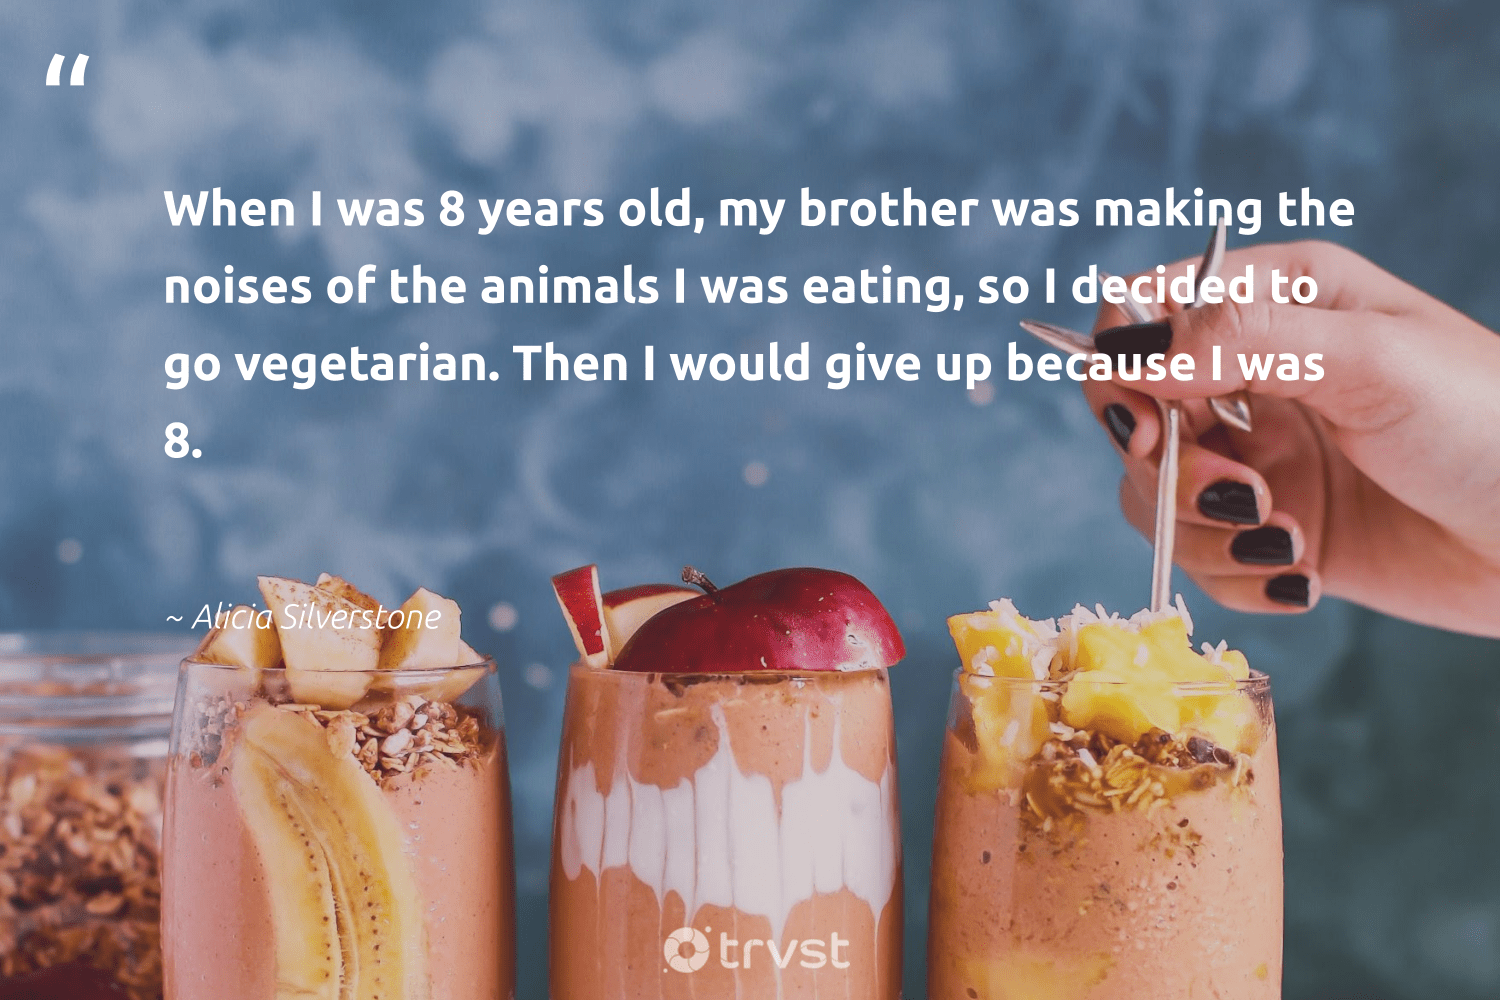 """""""When I was 8 years old, my brother was making the noises of the animals I was eating, so I decided to go vegetarian. Then I would give up because I was 8.""""  - Alicia Silverstone #trvst #quotes #animals #vegetarian #animallovers #greenliving #nature #impact #wildlife #green #birds #changetheworld"""